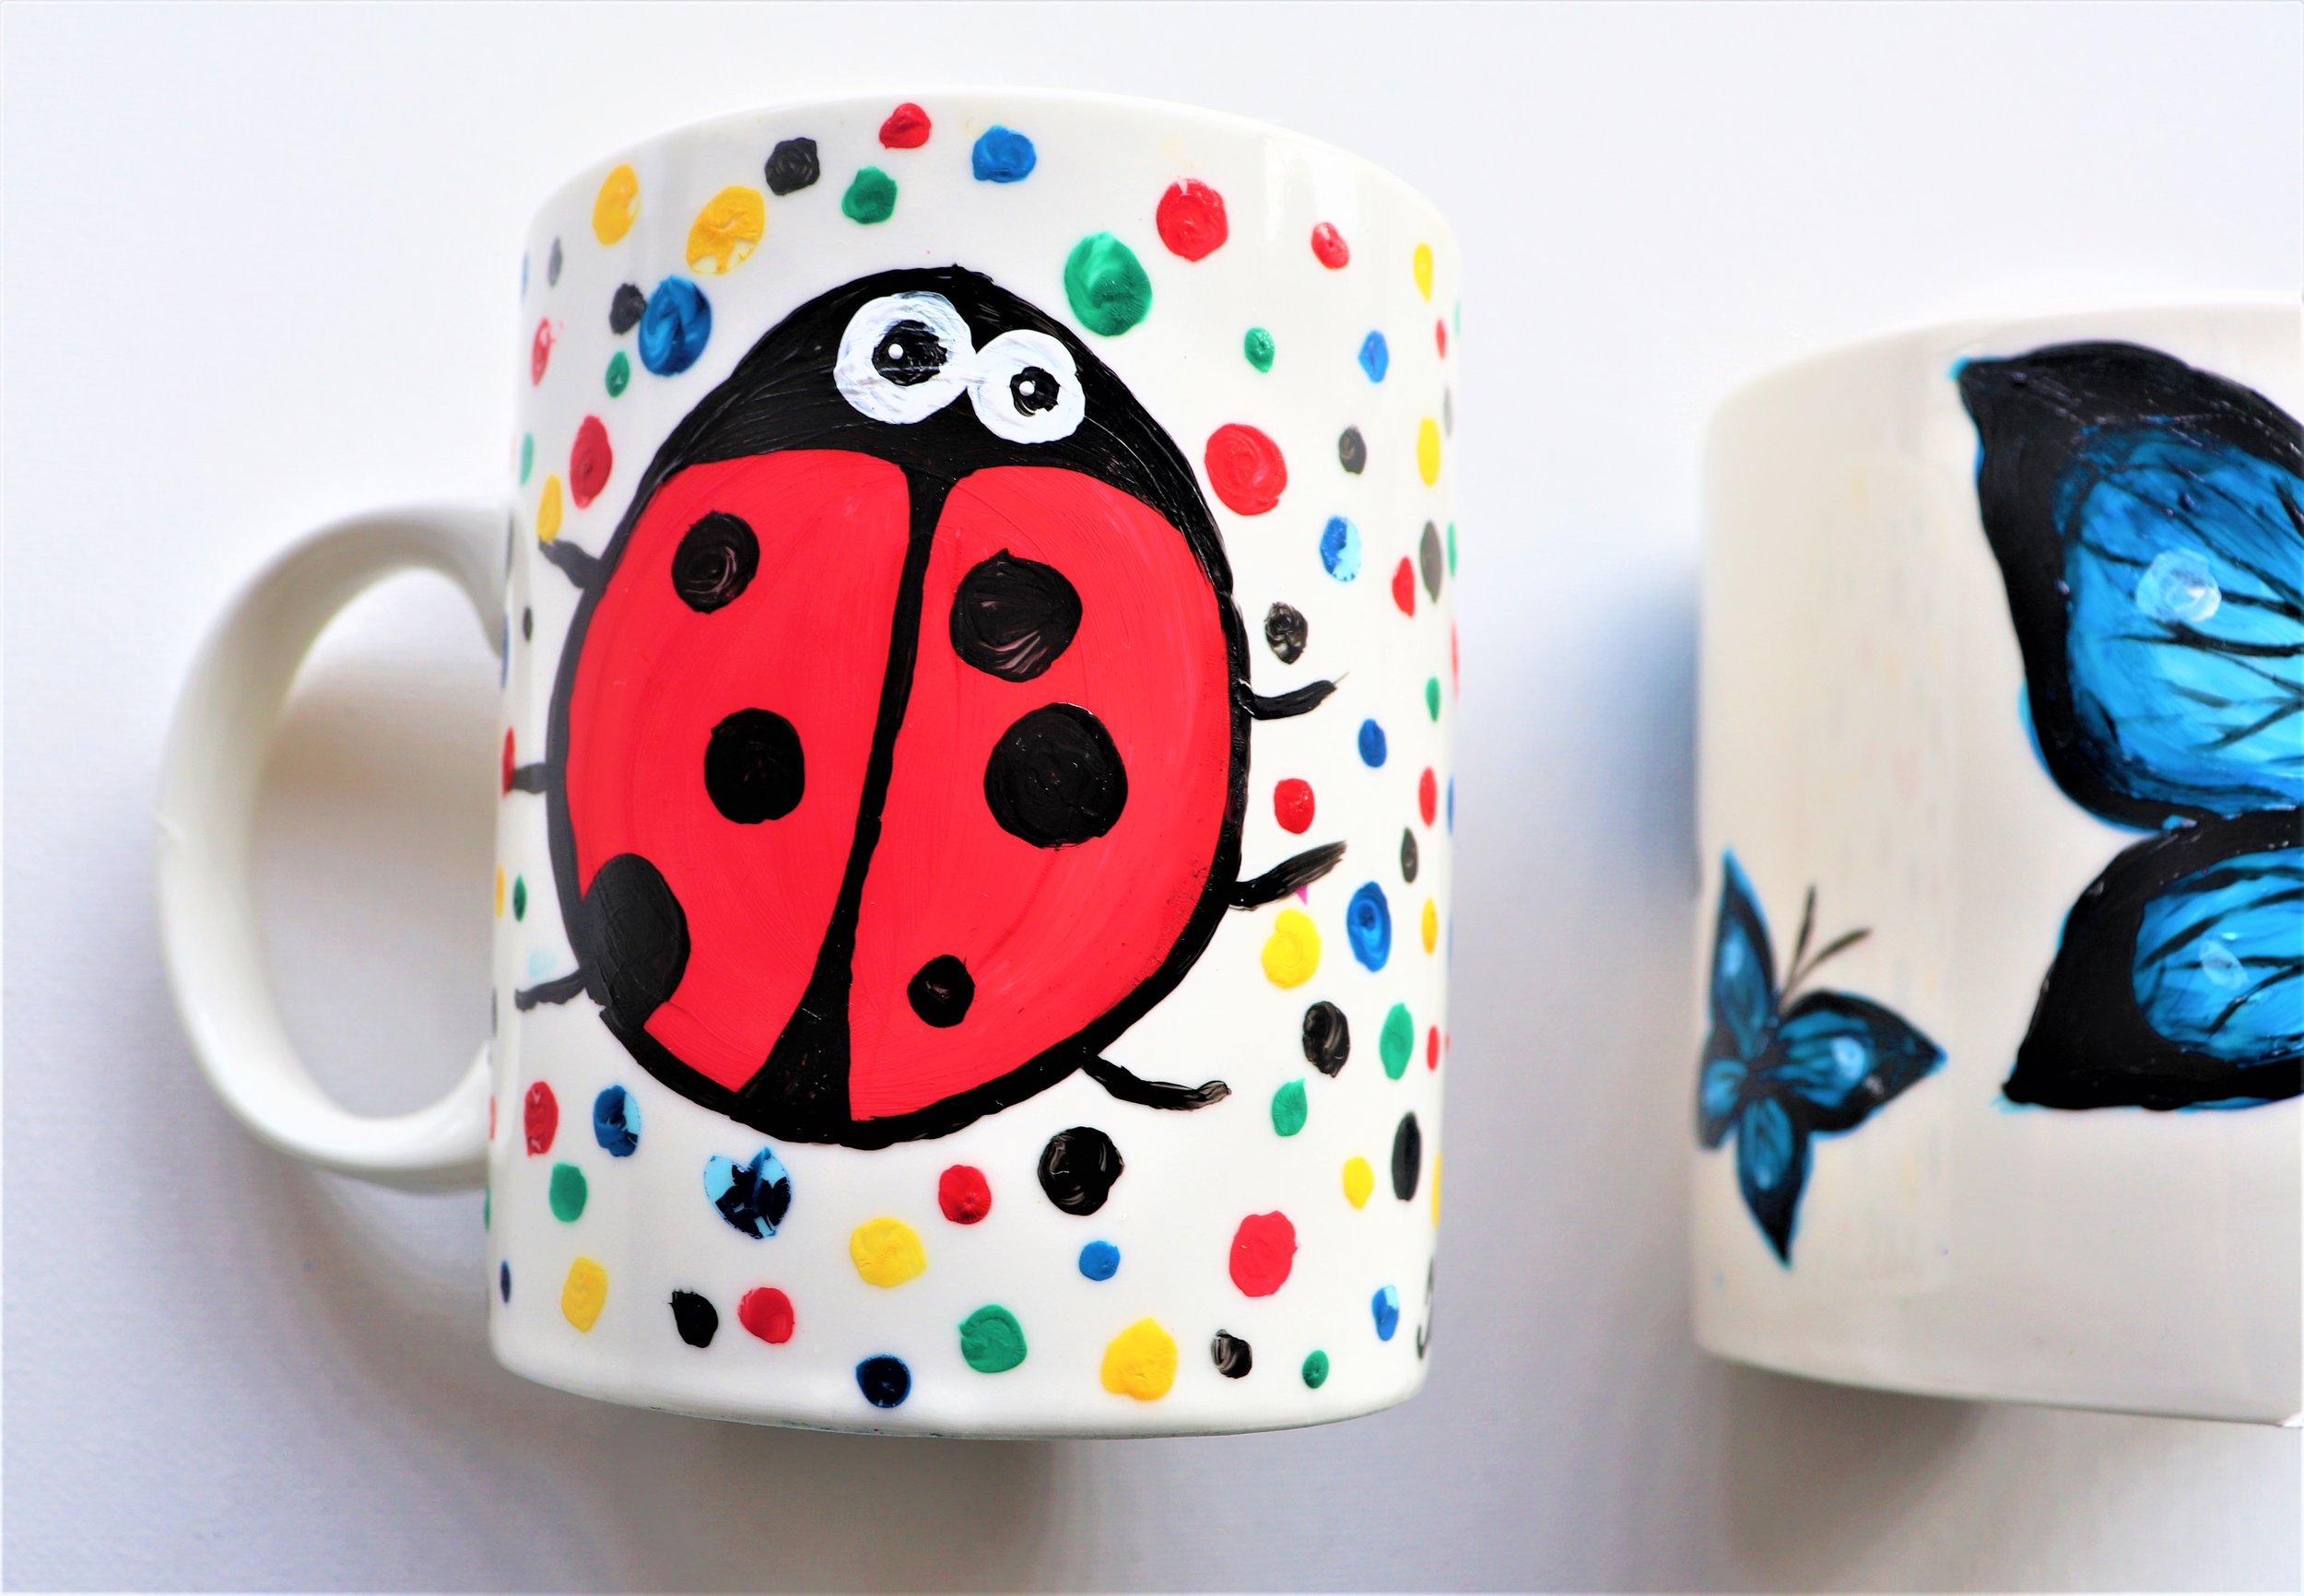 Painting Mugs    $25 per person